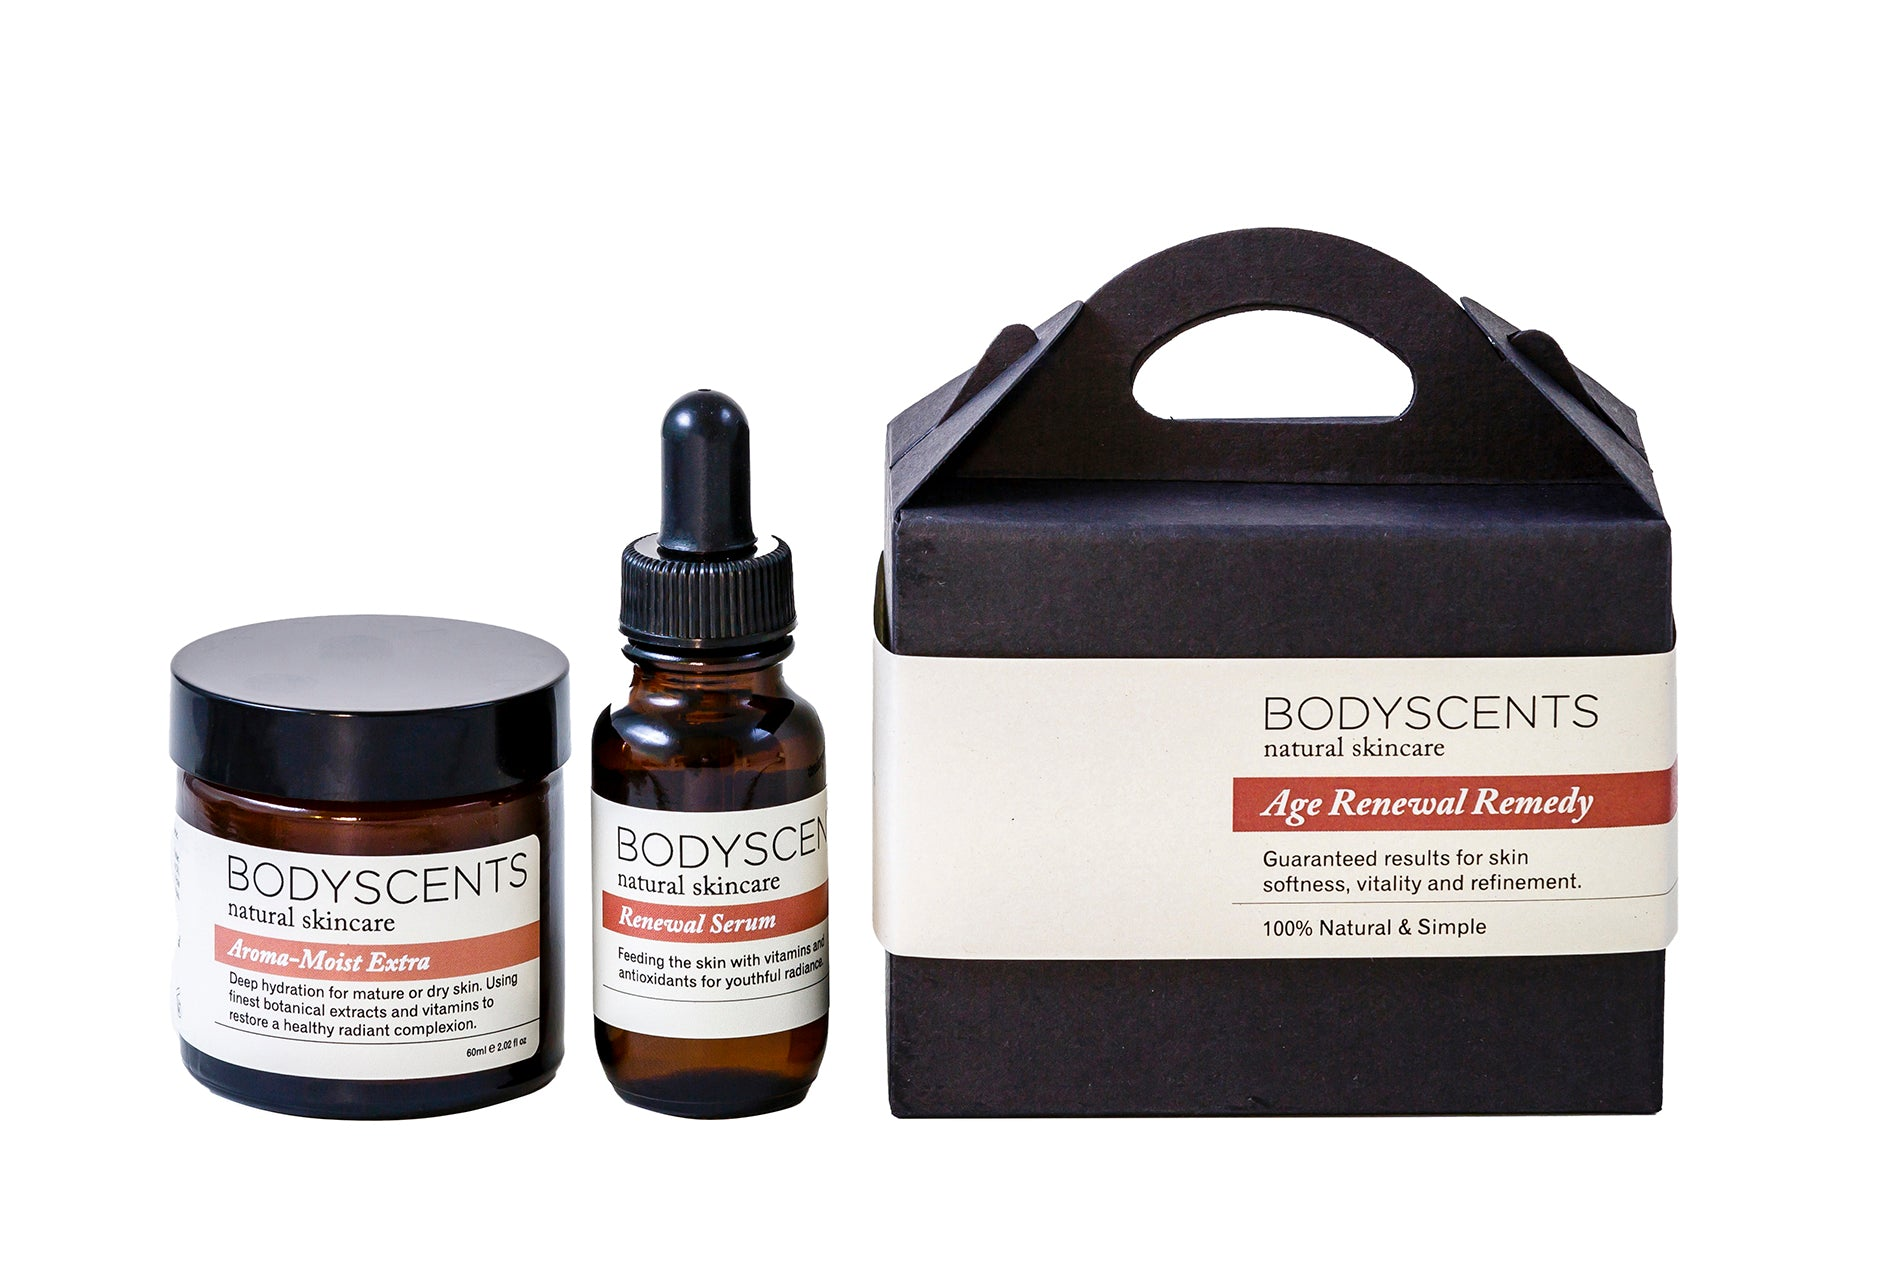 Age Renewal Remedy - Best Face Cream and Face Serum included - Bodyscents